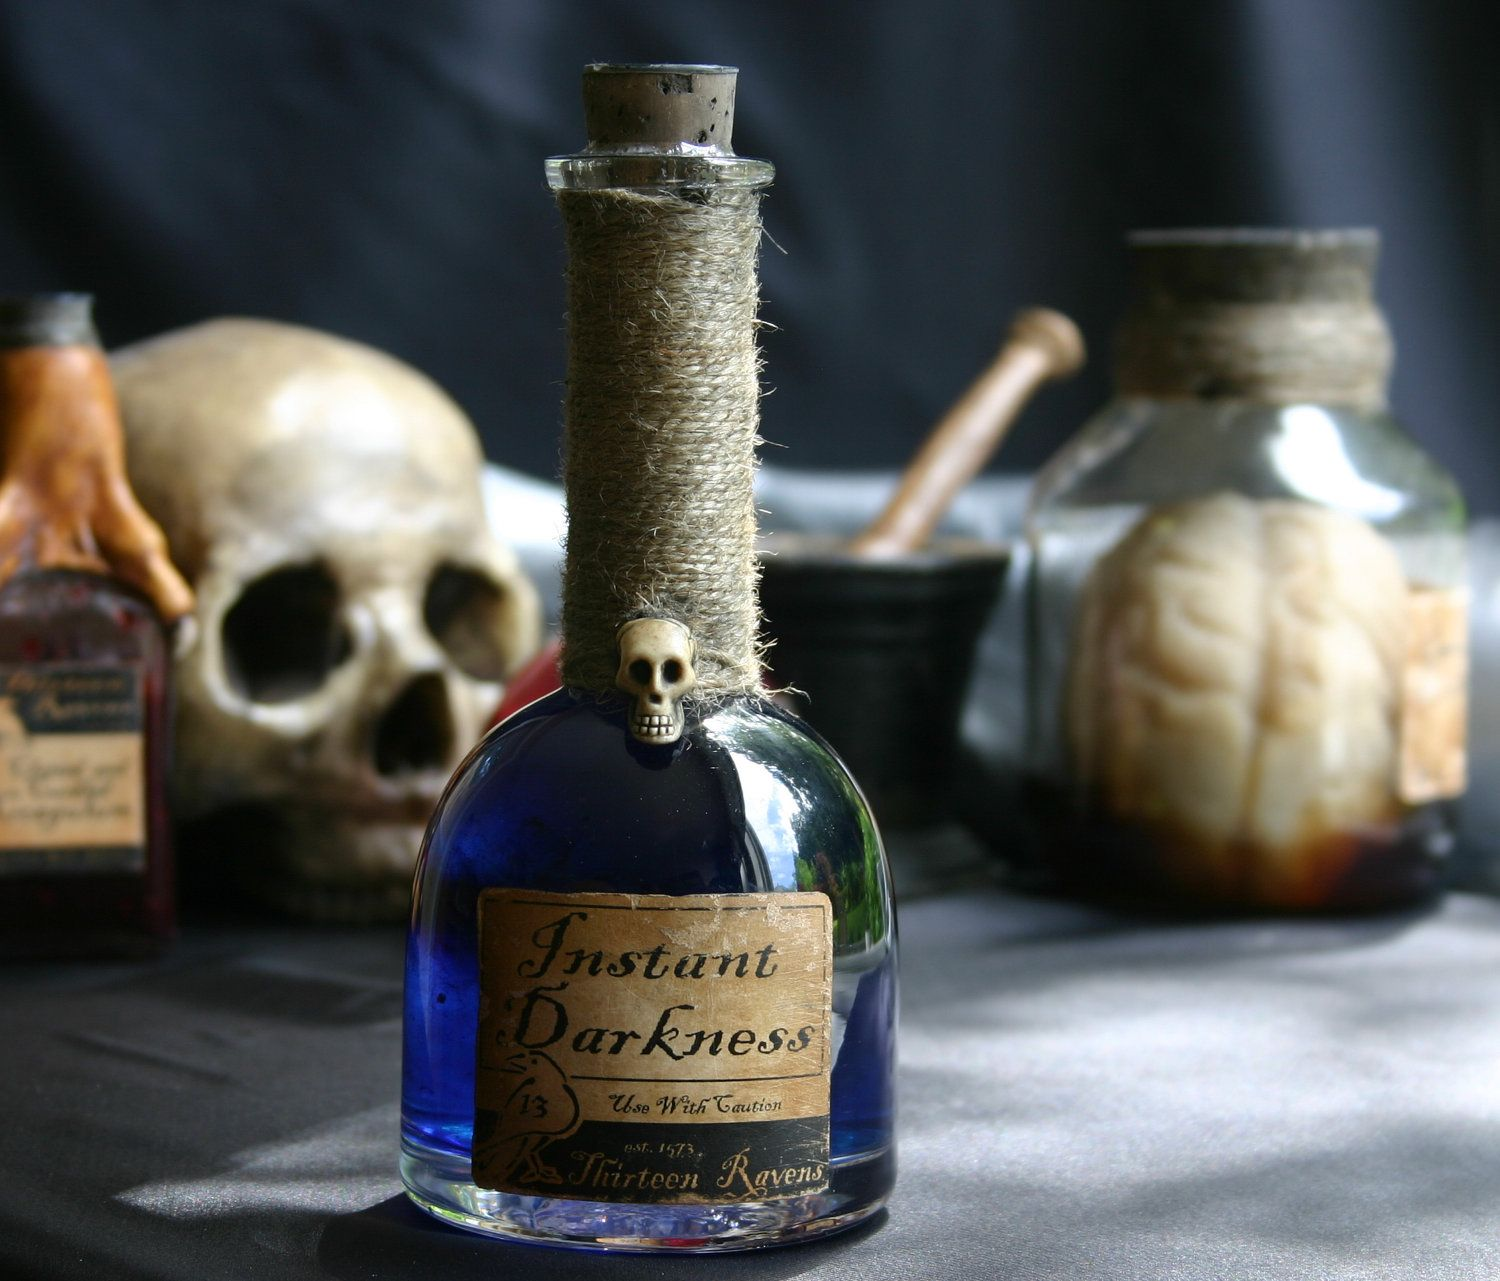 Potion Bottle for Instant Darkness I like the look of this etsy shops potion bottles